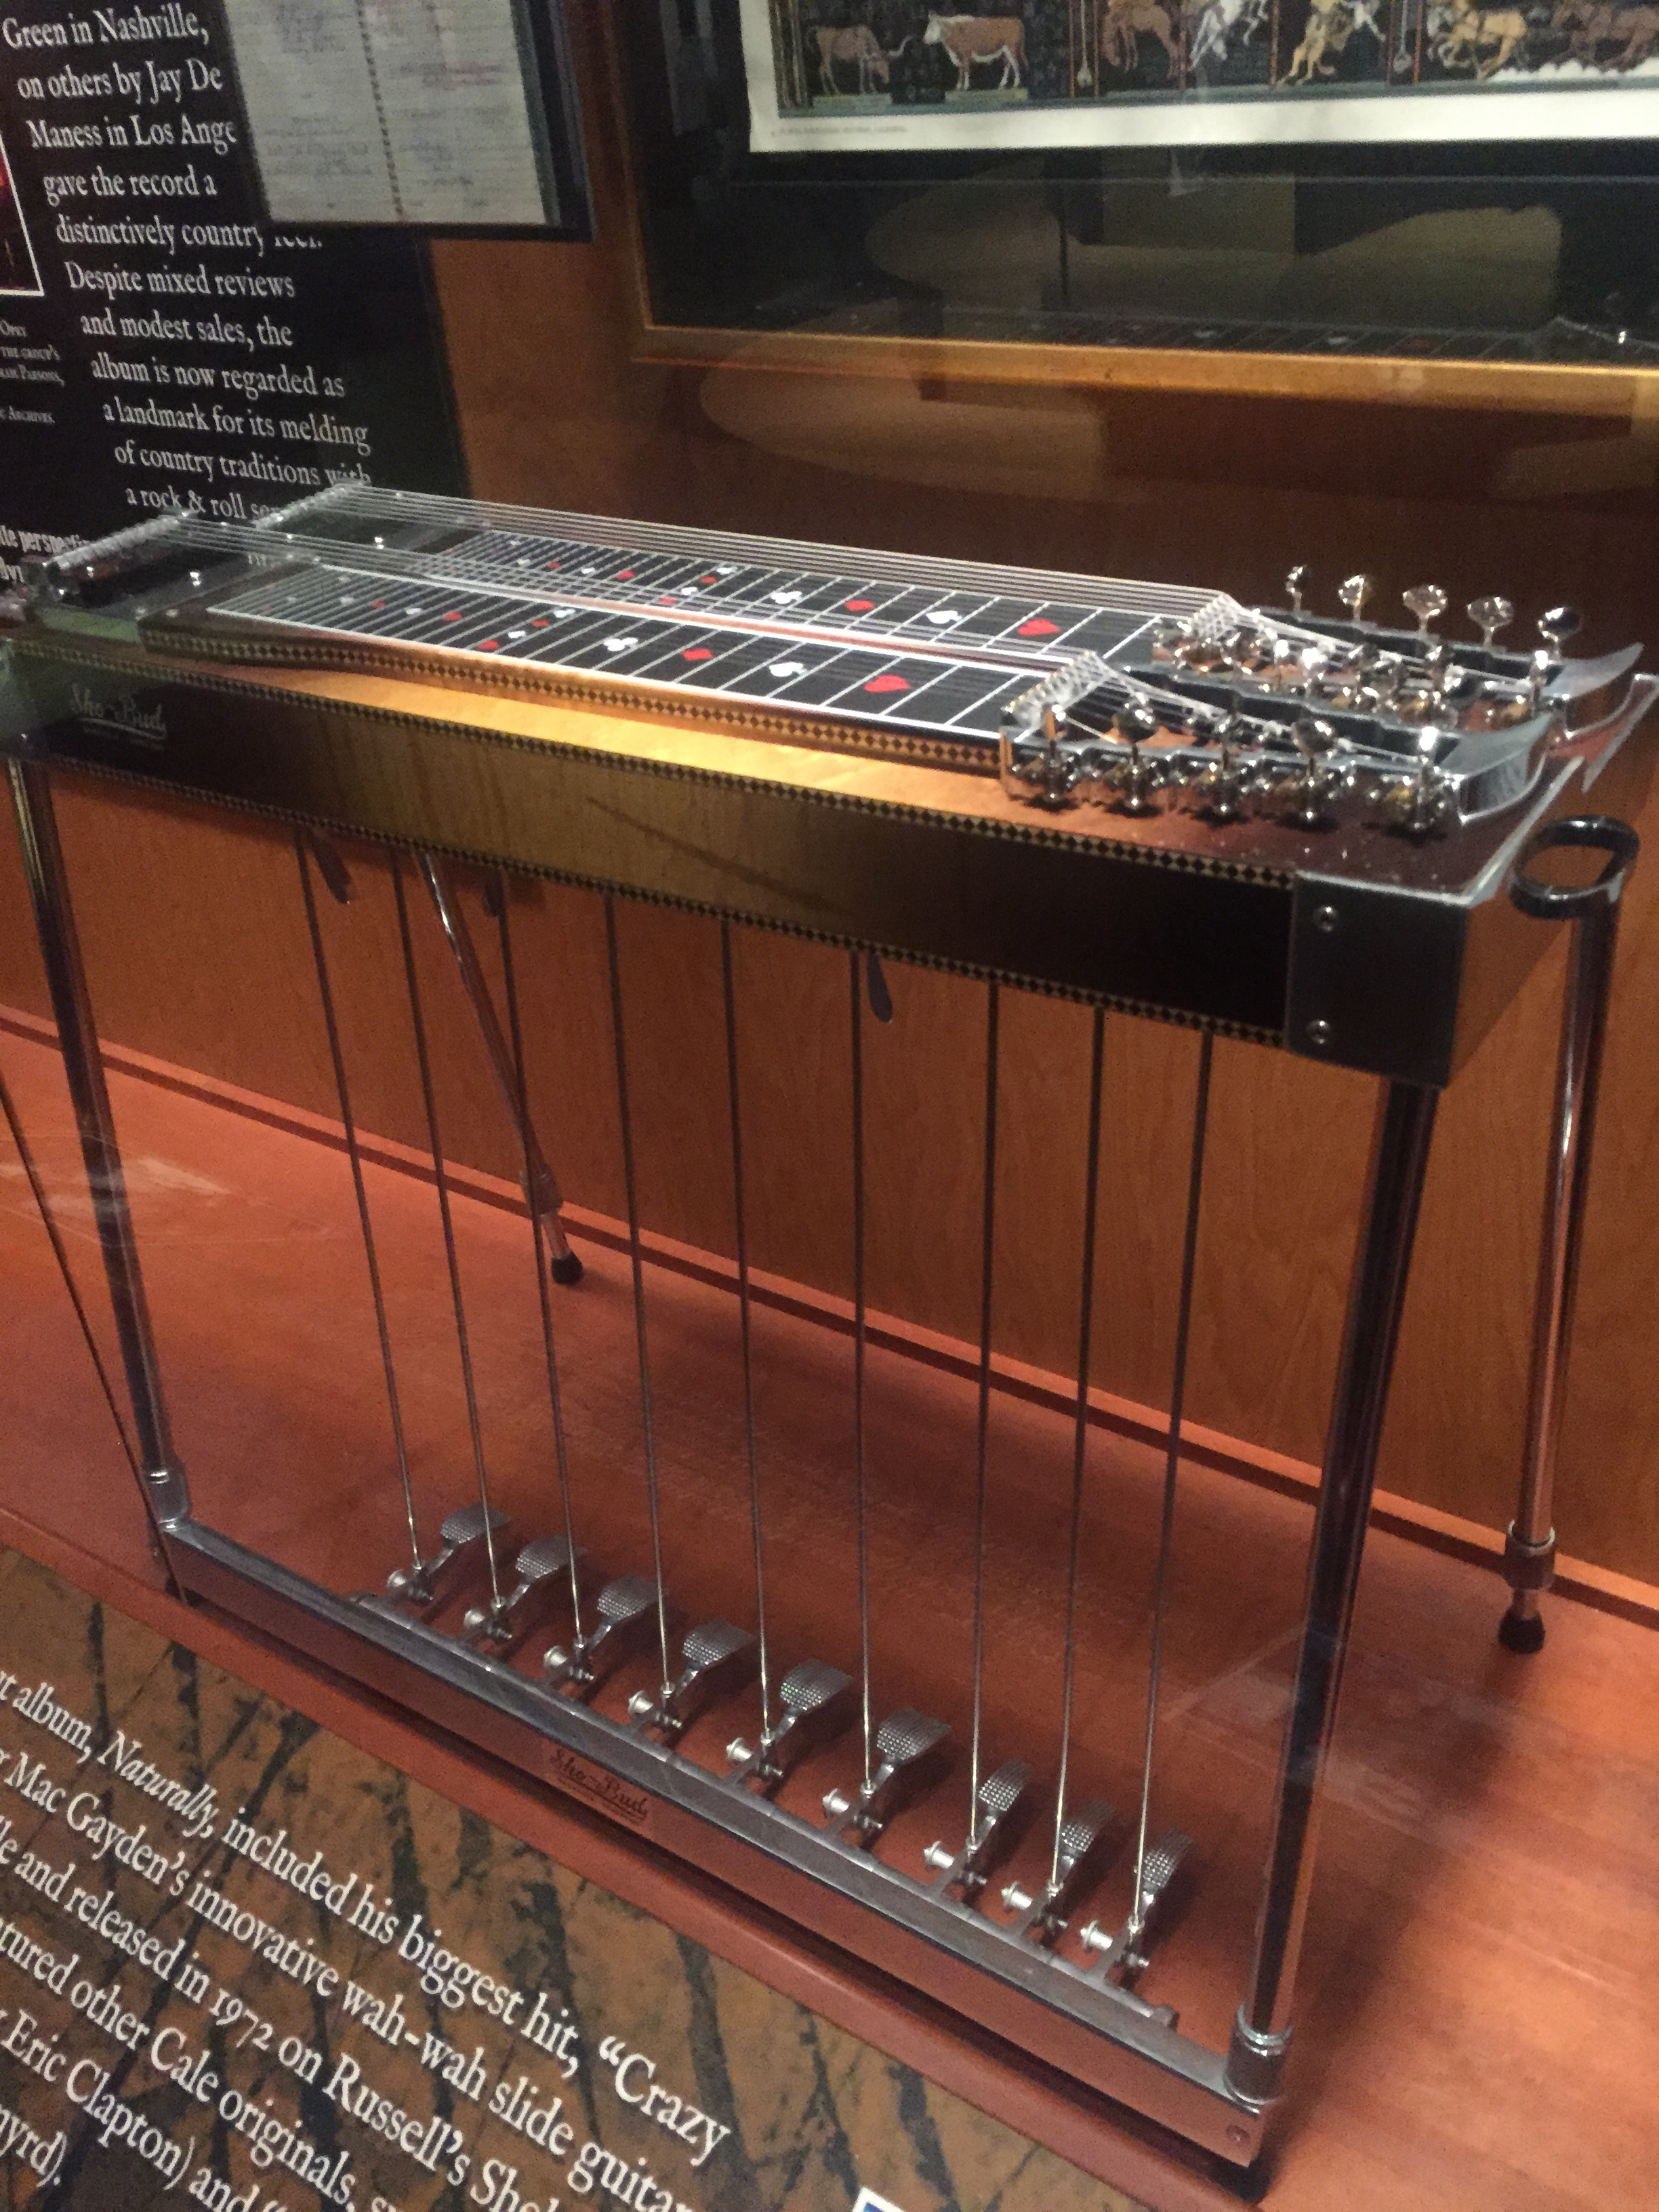 "Nashville Cat Lloyd Green's Show-Bud pedal steel which was used on the Byrds 1968 album ""Sweetheart of the Rodeo,"" introducing pedal steel to rock audiences. Green also played this instrument on Tammy Wynette's ""D-I-V-O-R-C-E."" (Photo by Dave Hoekstra)"